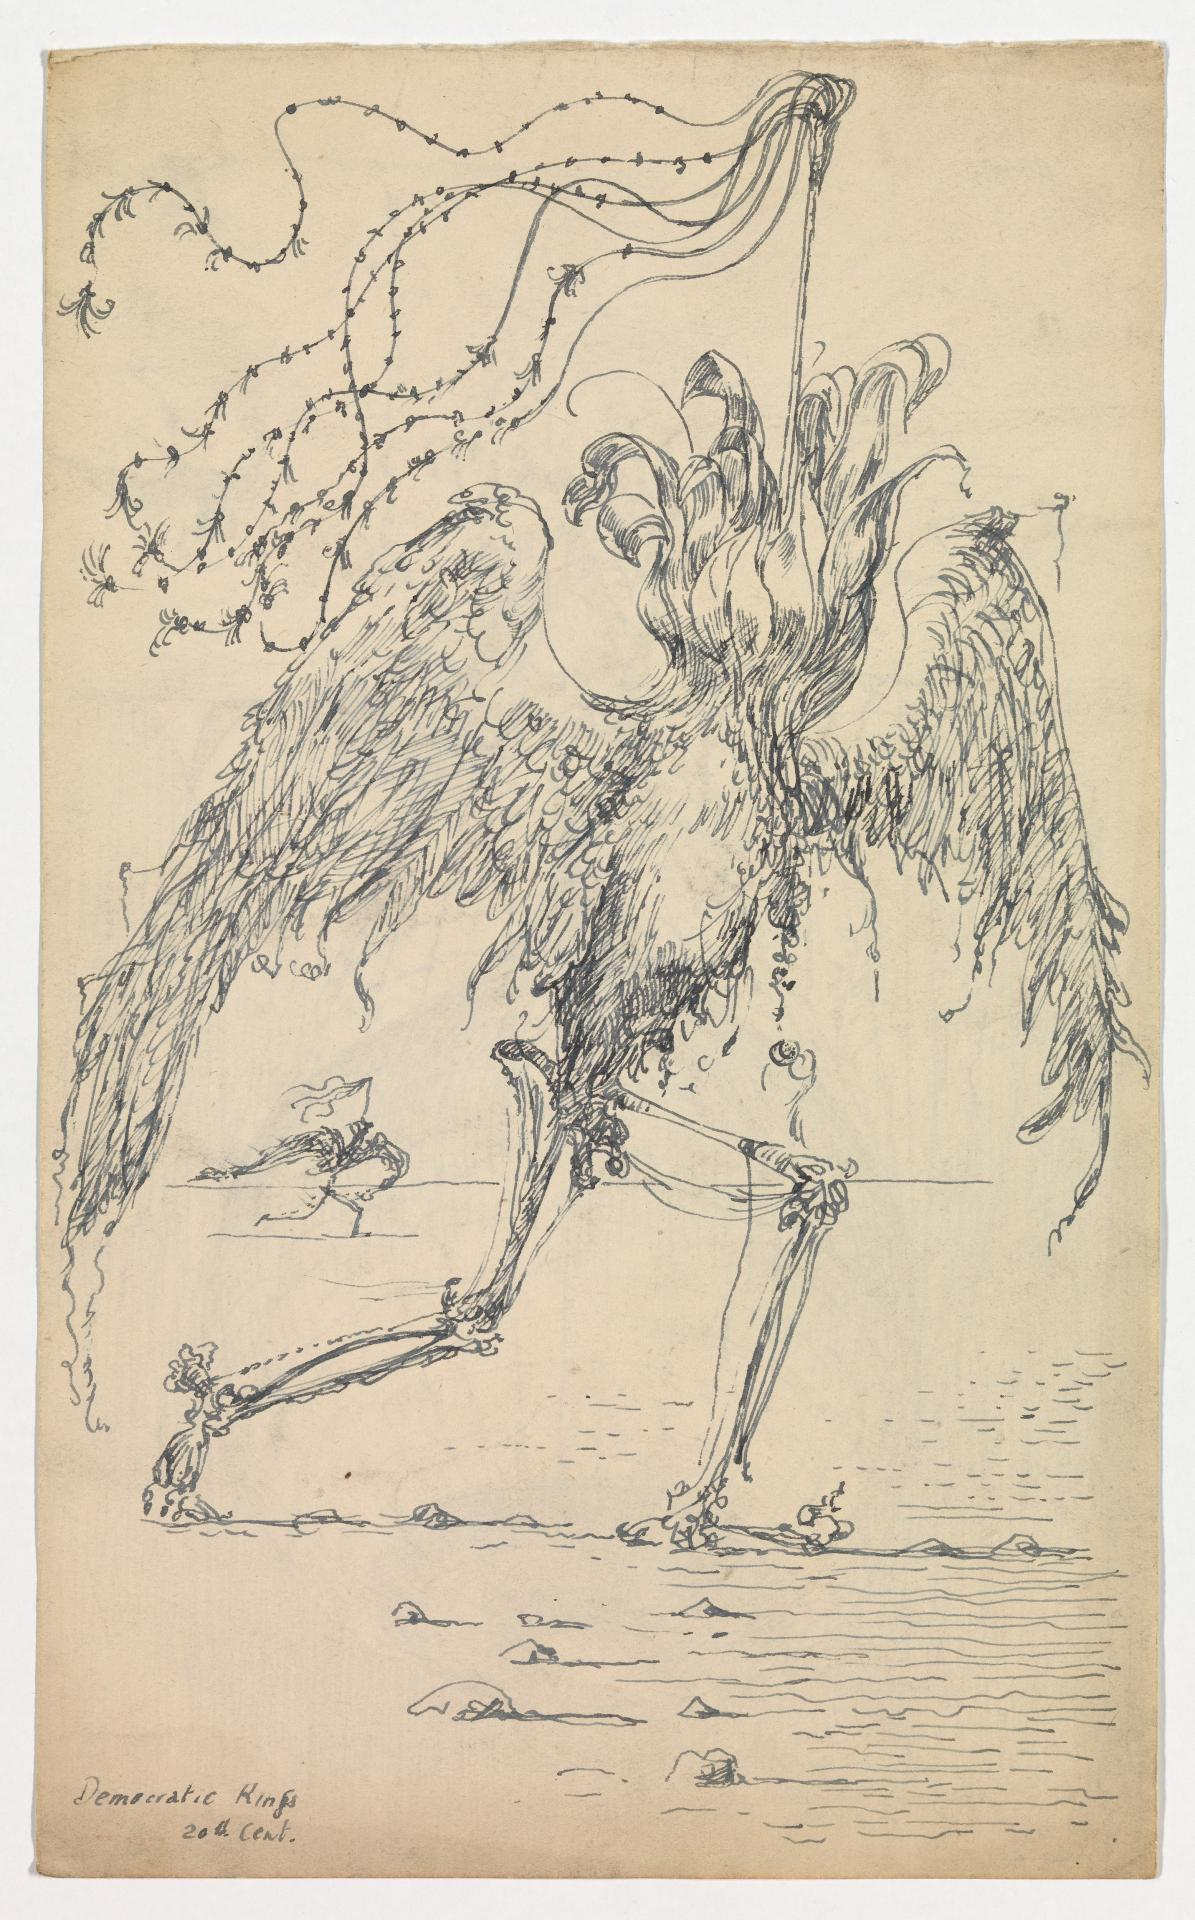 Democratic Kings (Winged creature with bud-like head and skeletal legs with banner)